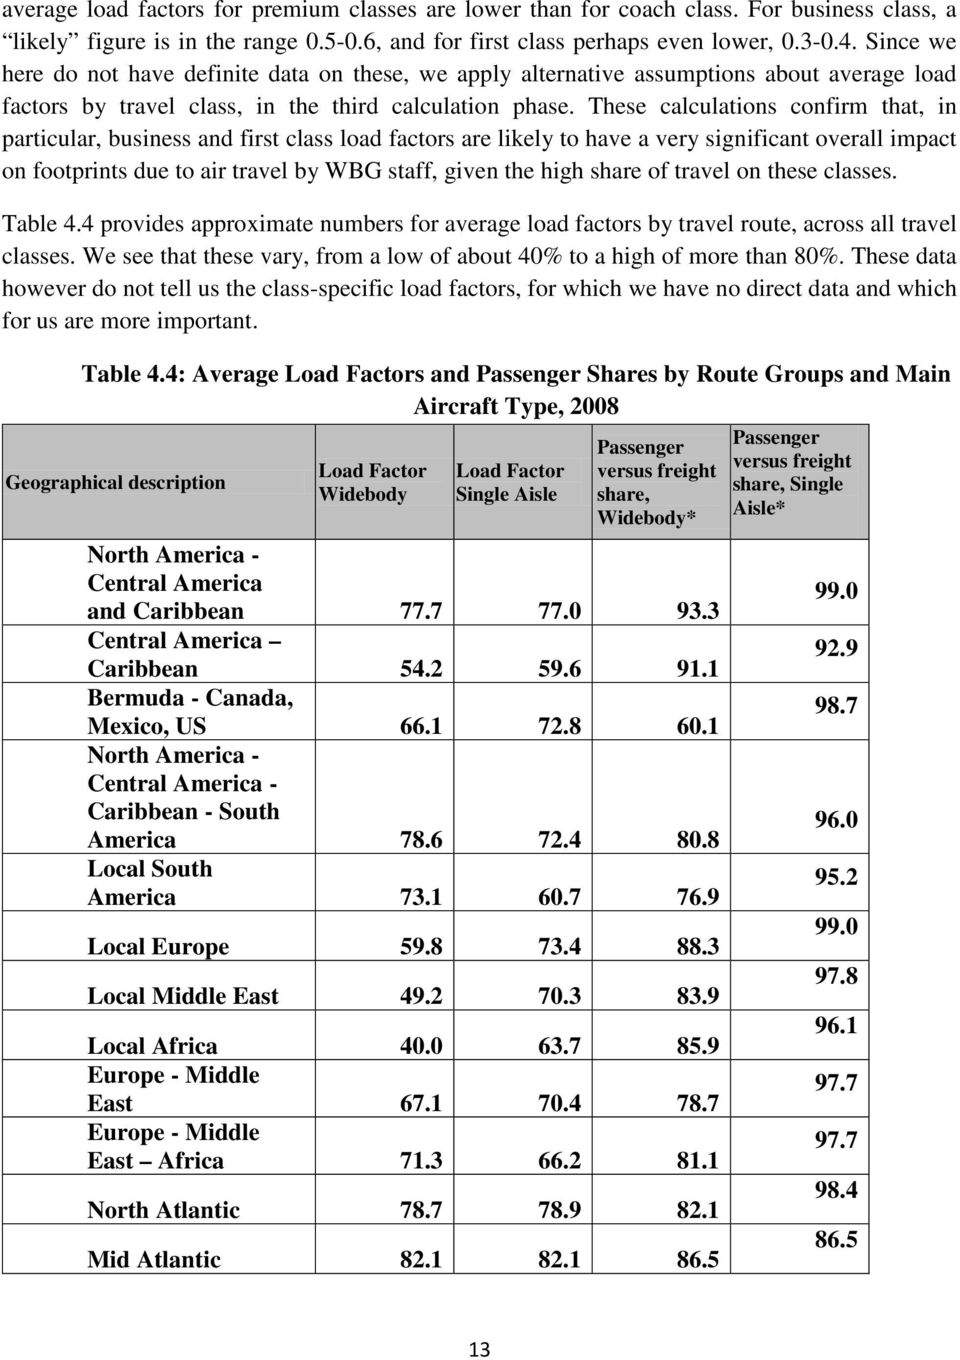 These calculations confirm that, in particular, business and first class load factors are likely to have a very significant overall impact on footprints due to air travel by WBG staff, given the high